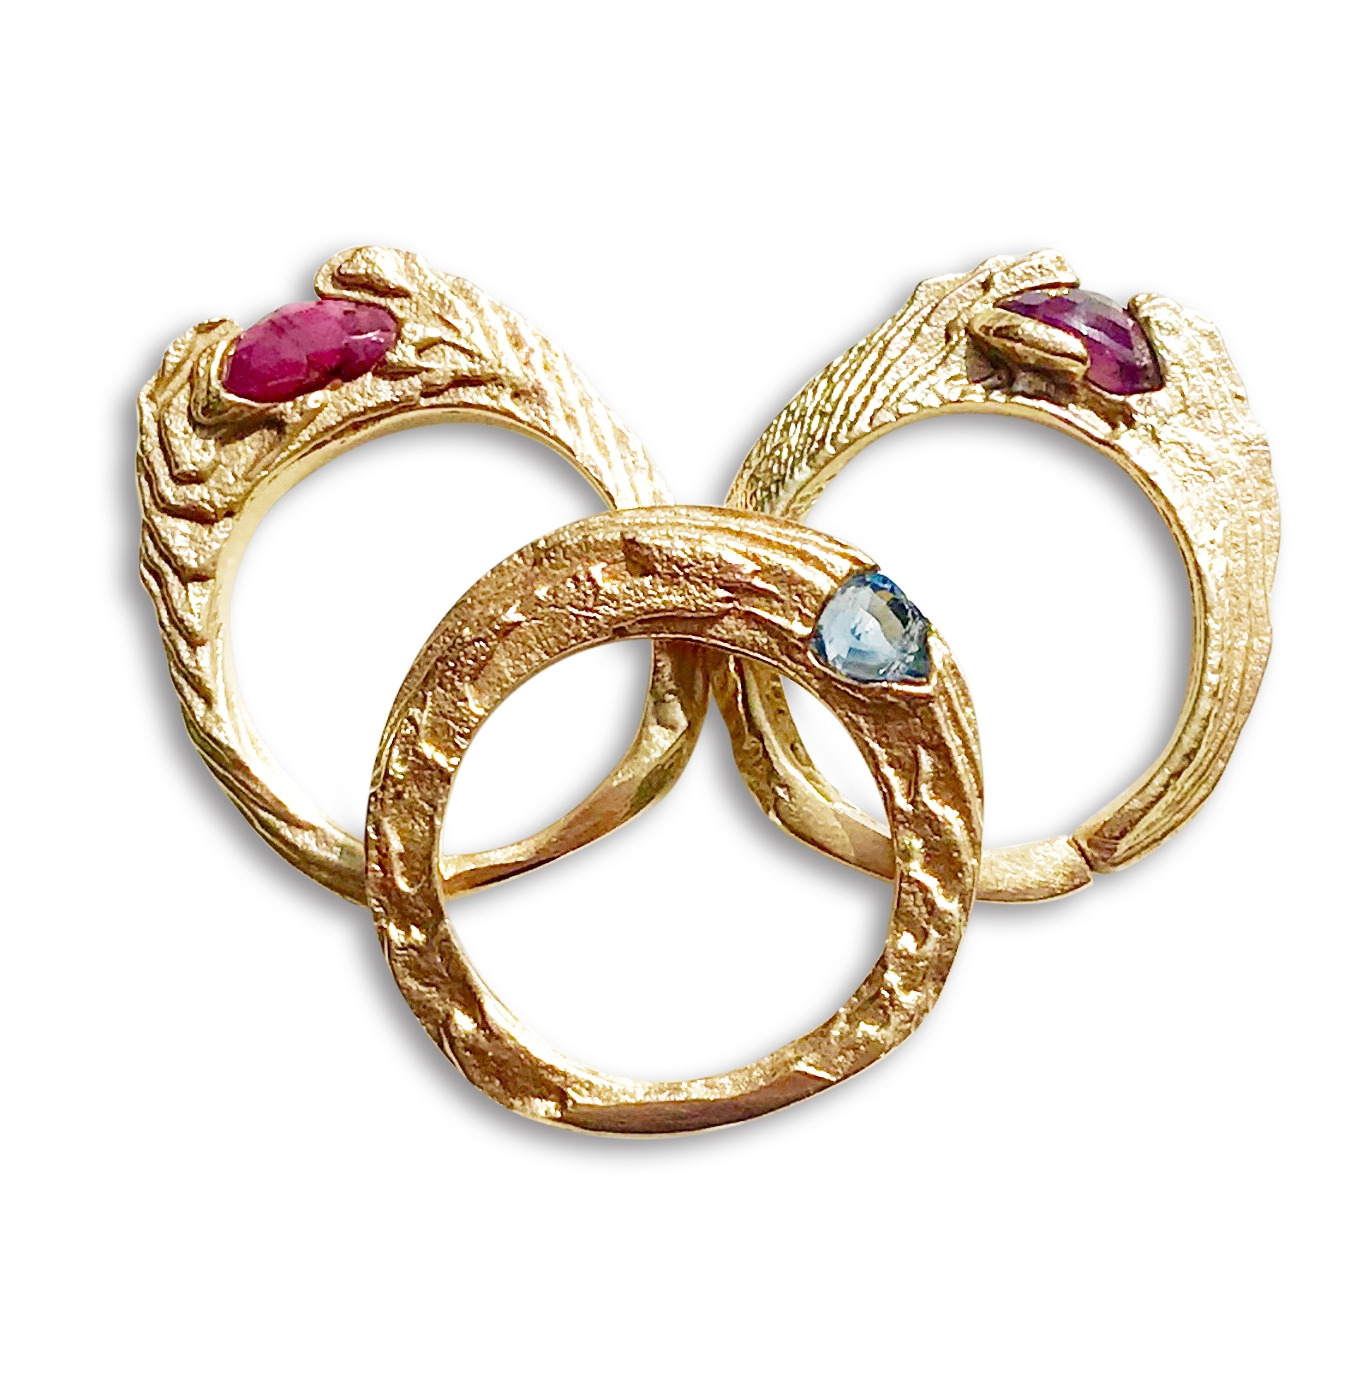 CUTTLEFISH GOLD RINGS